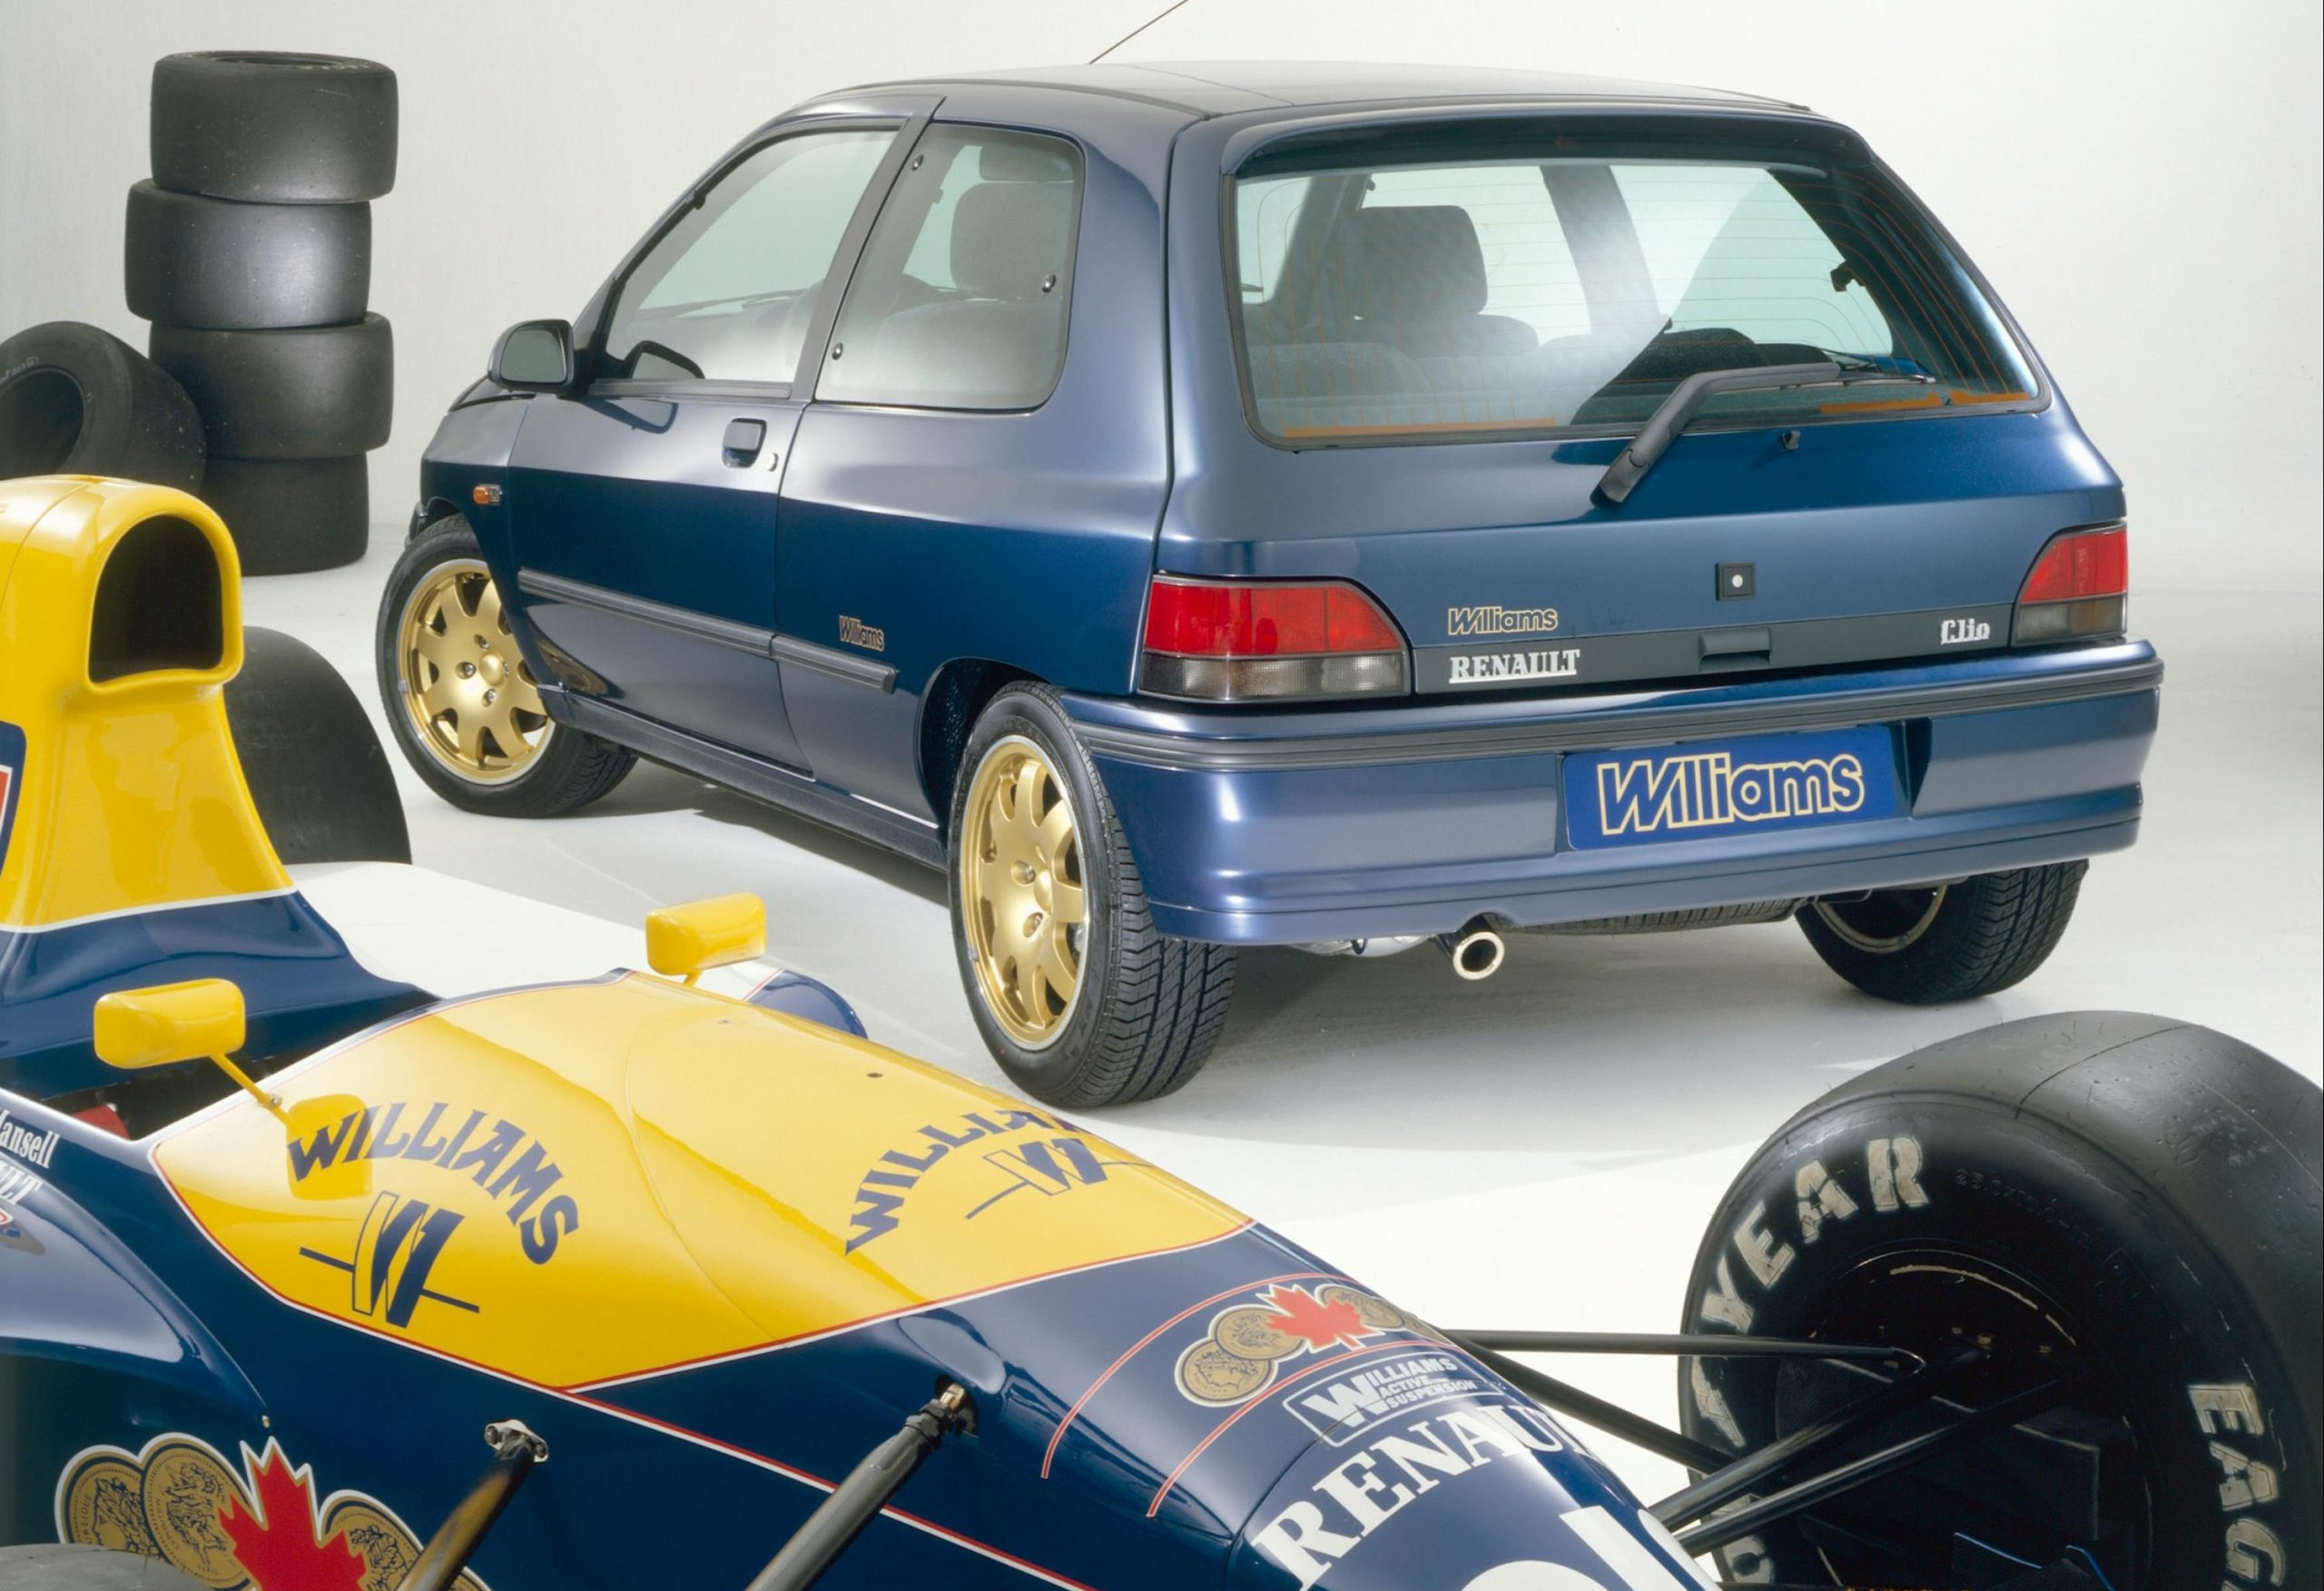 Renault Clio at 30: Highs and lows of a hot hatch hero